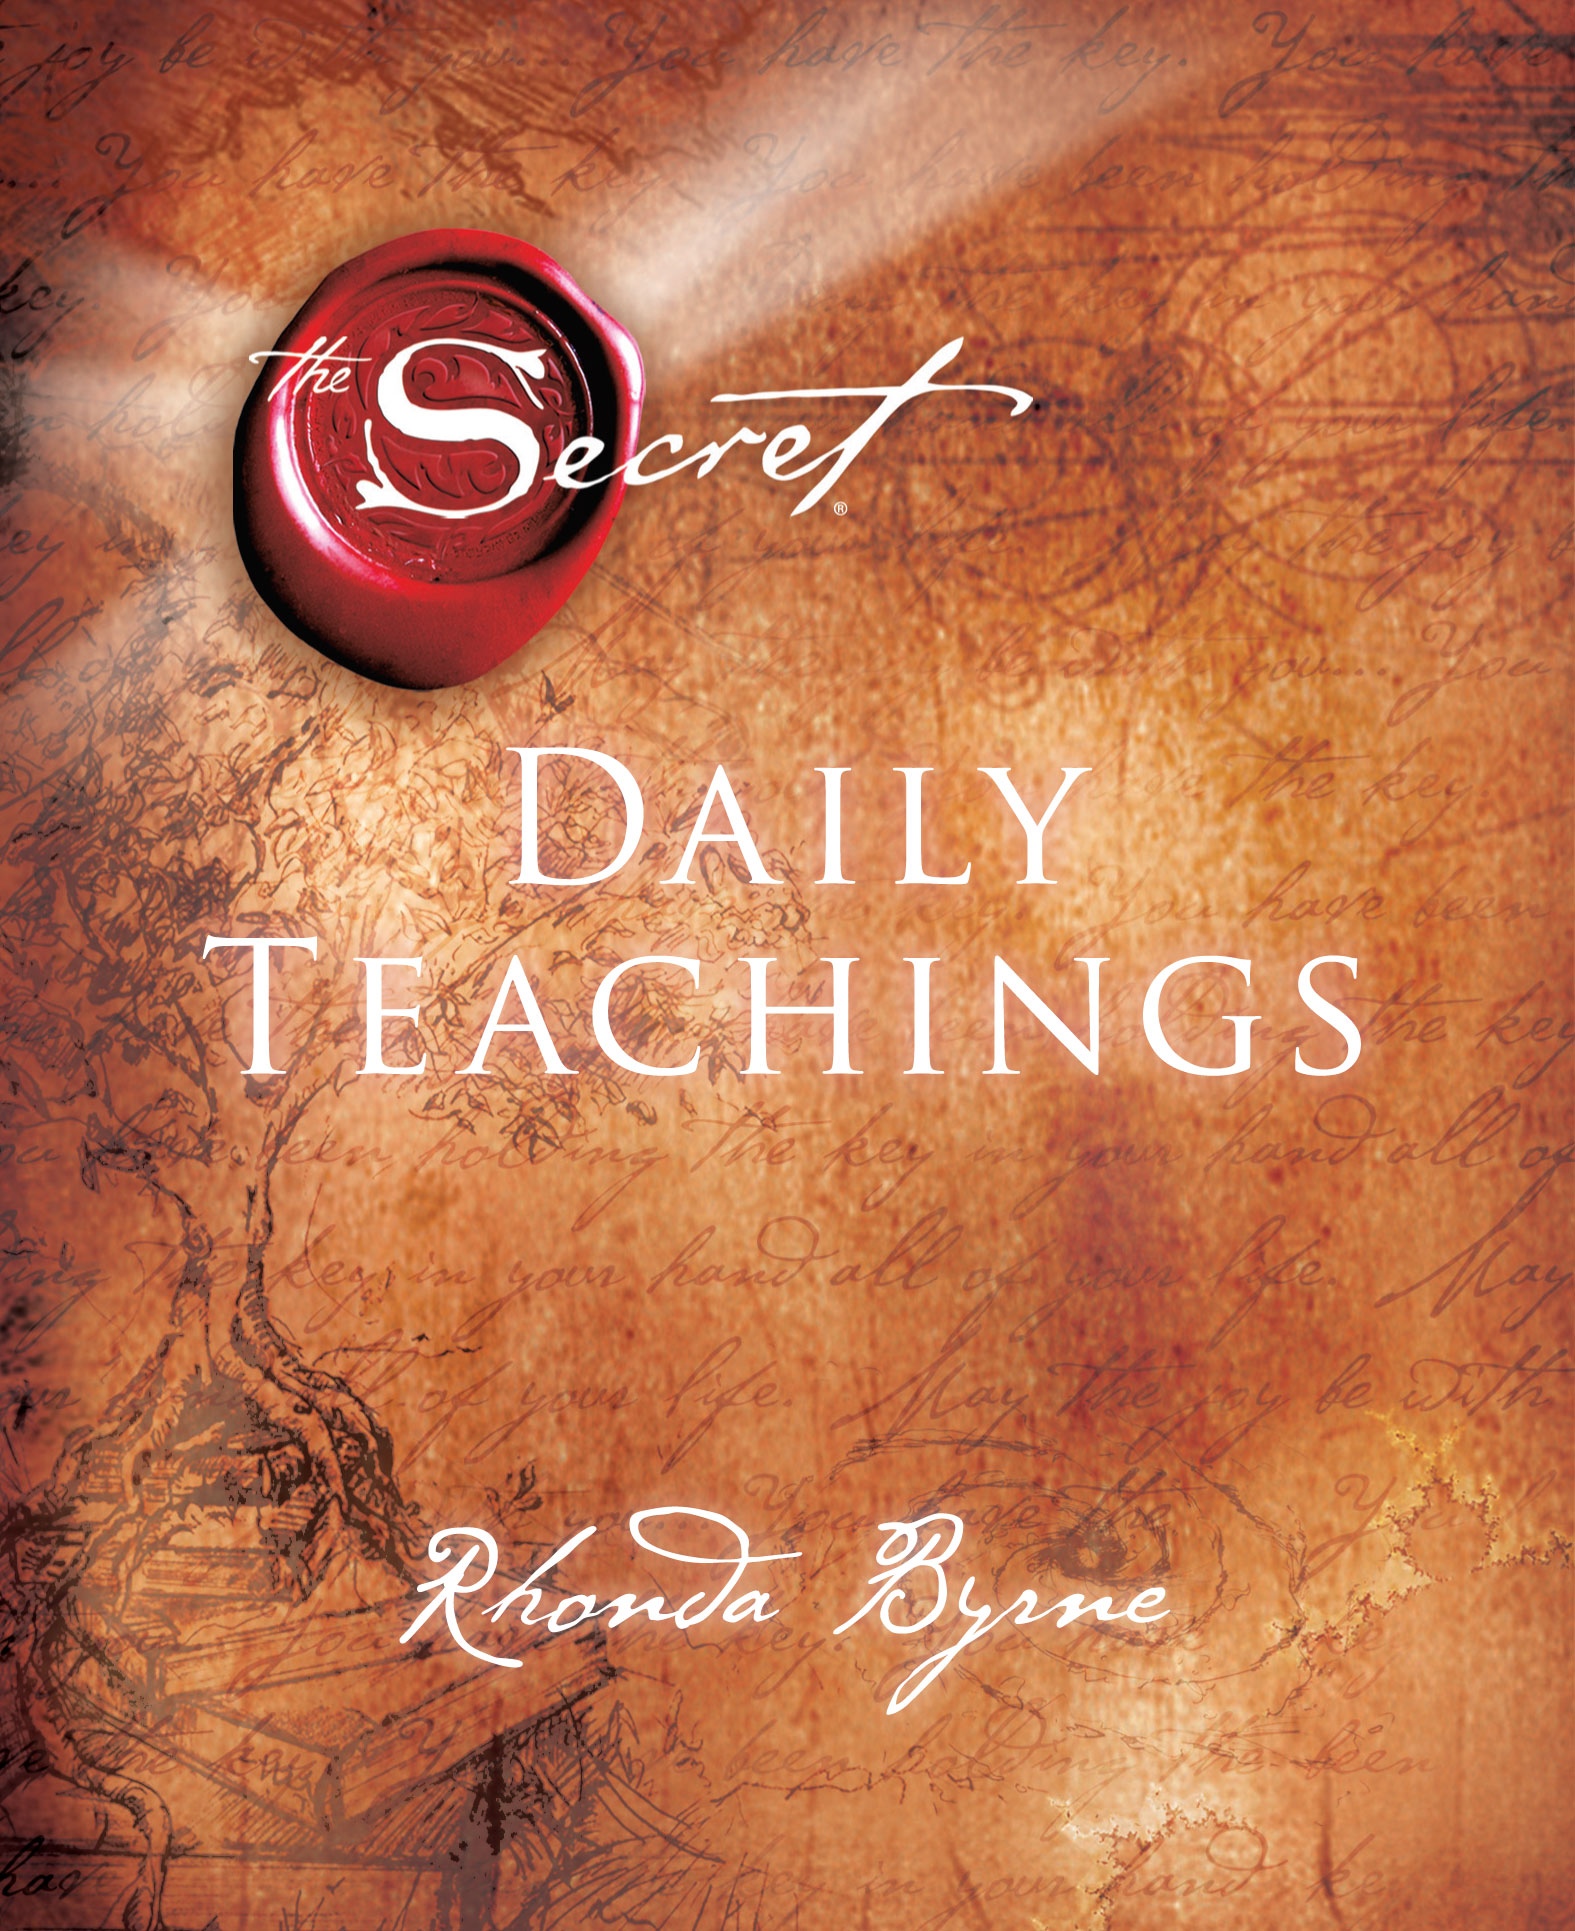 The Secret Daily Teachings | Book by Rhonda Byrne